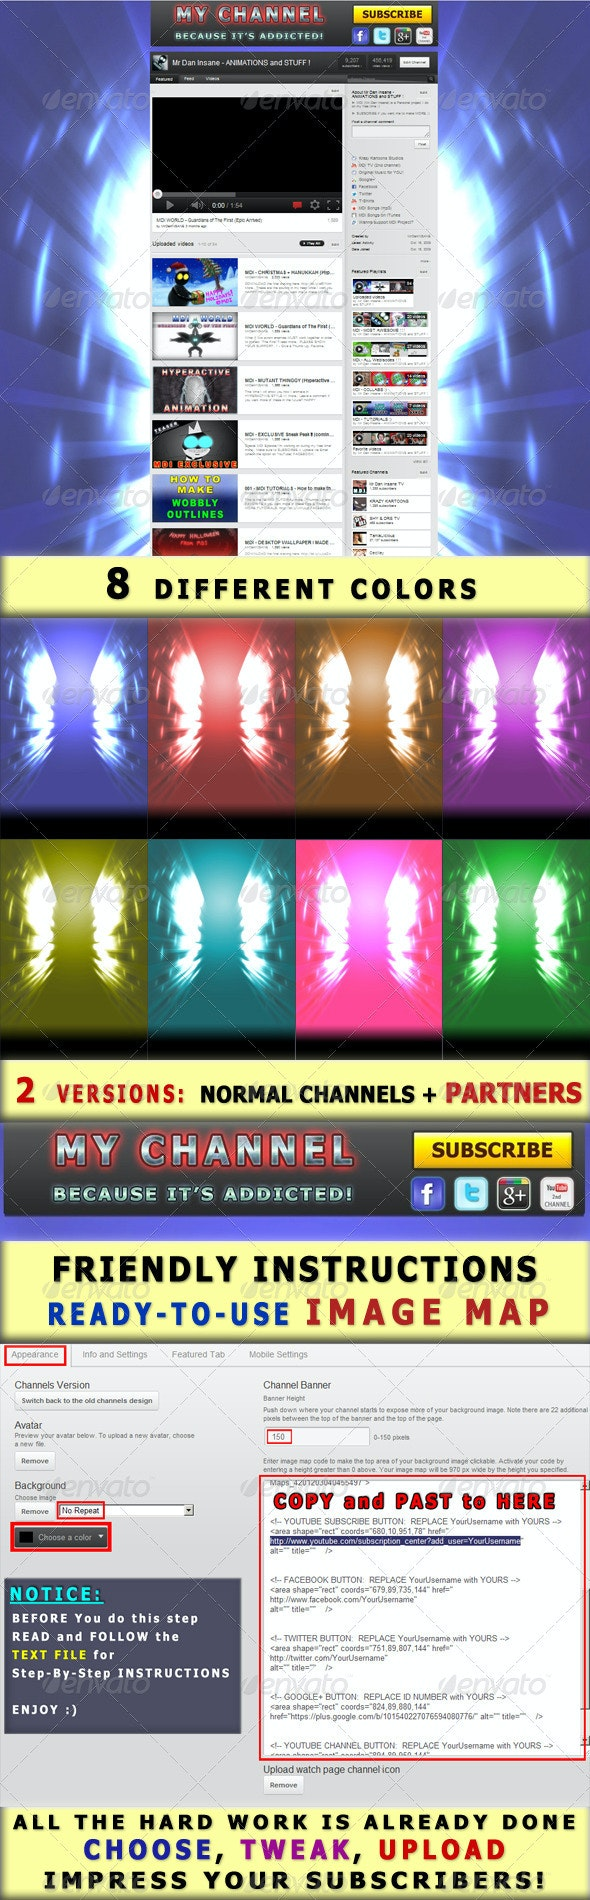 YouTube Channel Dynamic Background - MAGIC SPARKS - YouTube Social Media